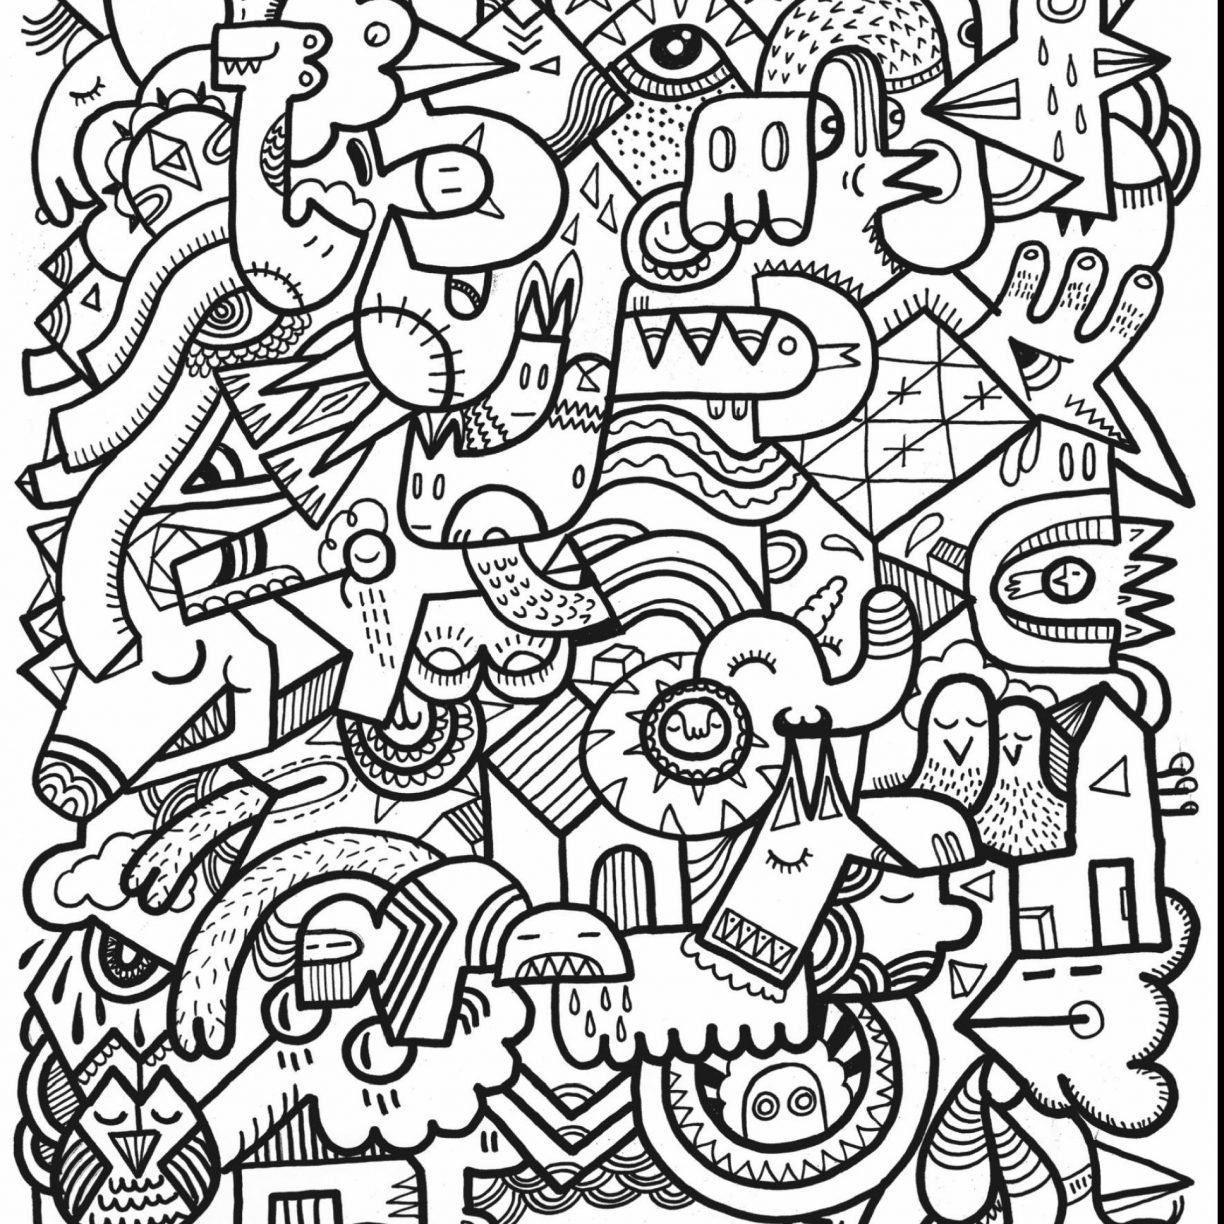 1224x1224 Complex Coloring Page Free Adult Printable Pages For Adults